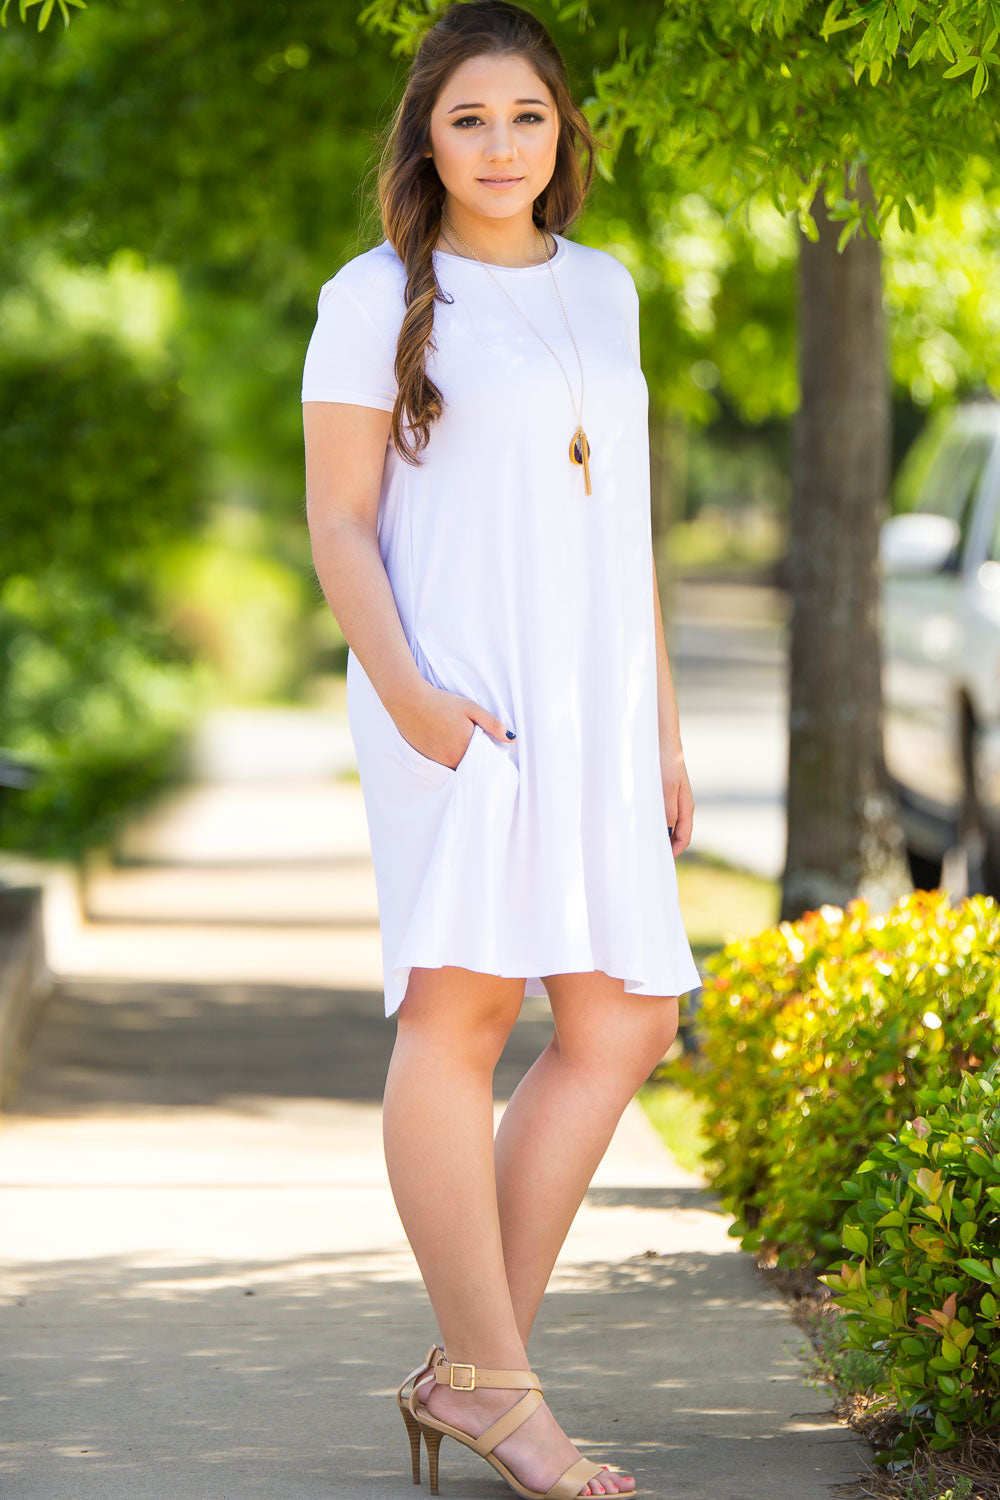 Piko Short Sleeve Swing Dress - White - Piko Clothing